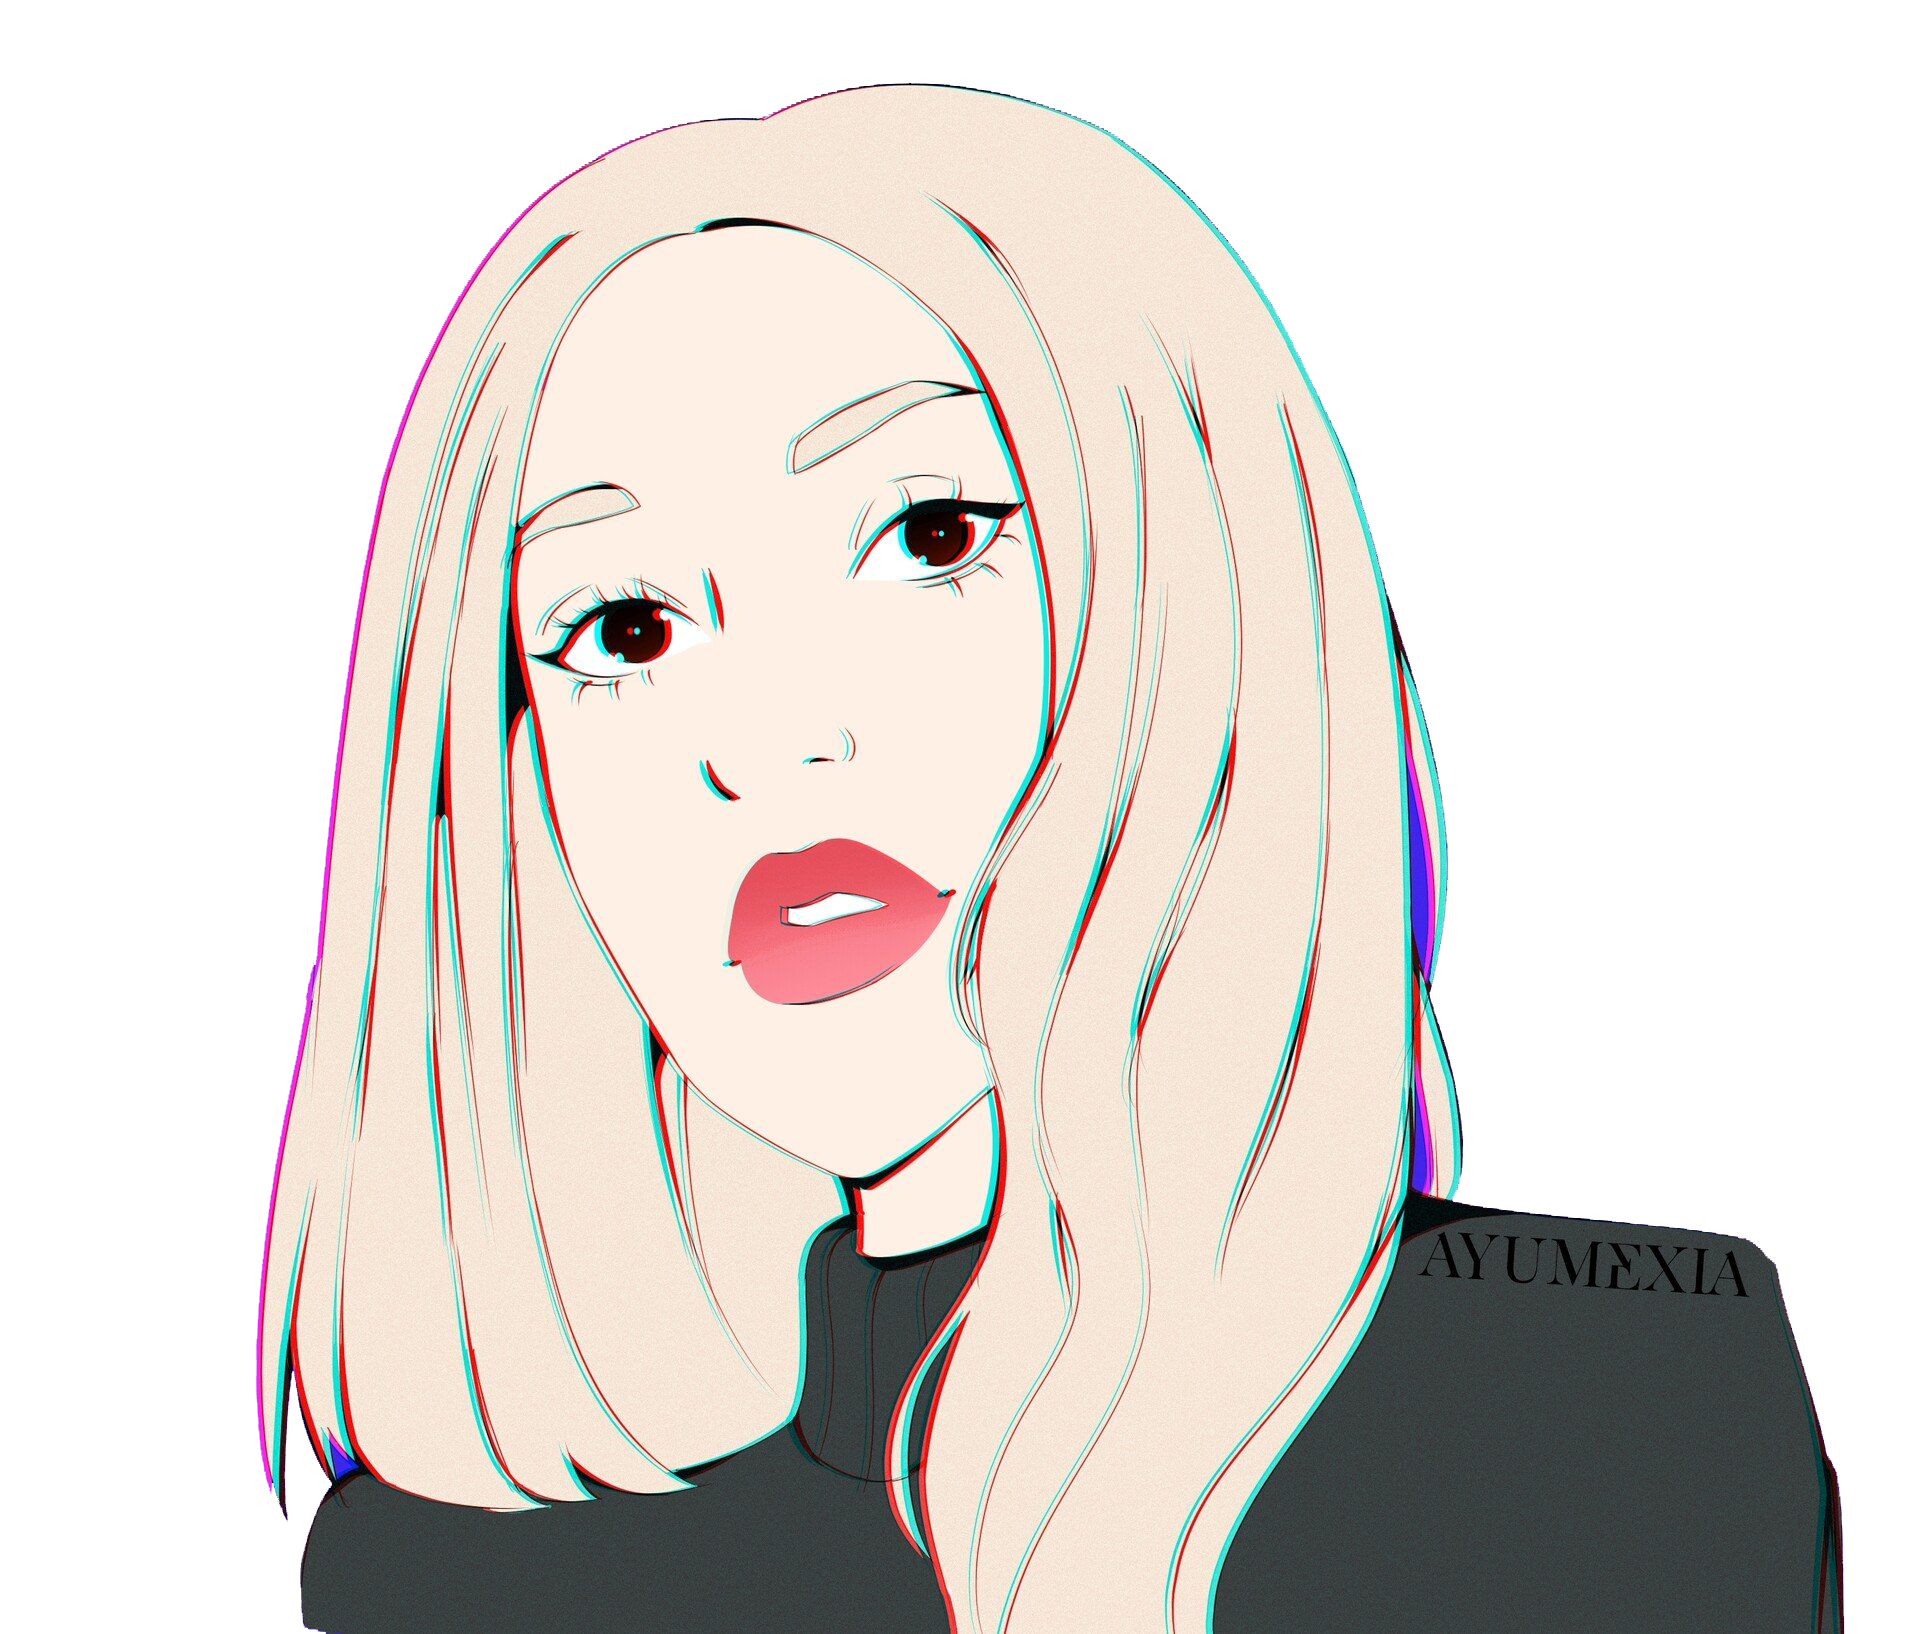 Ava Max PNG Images